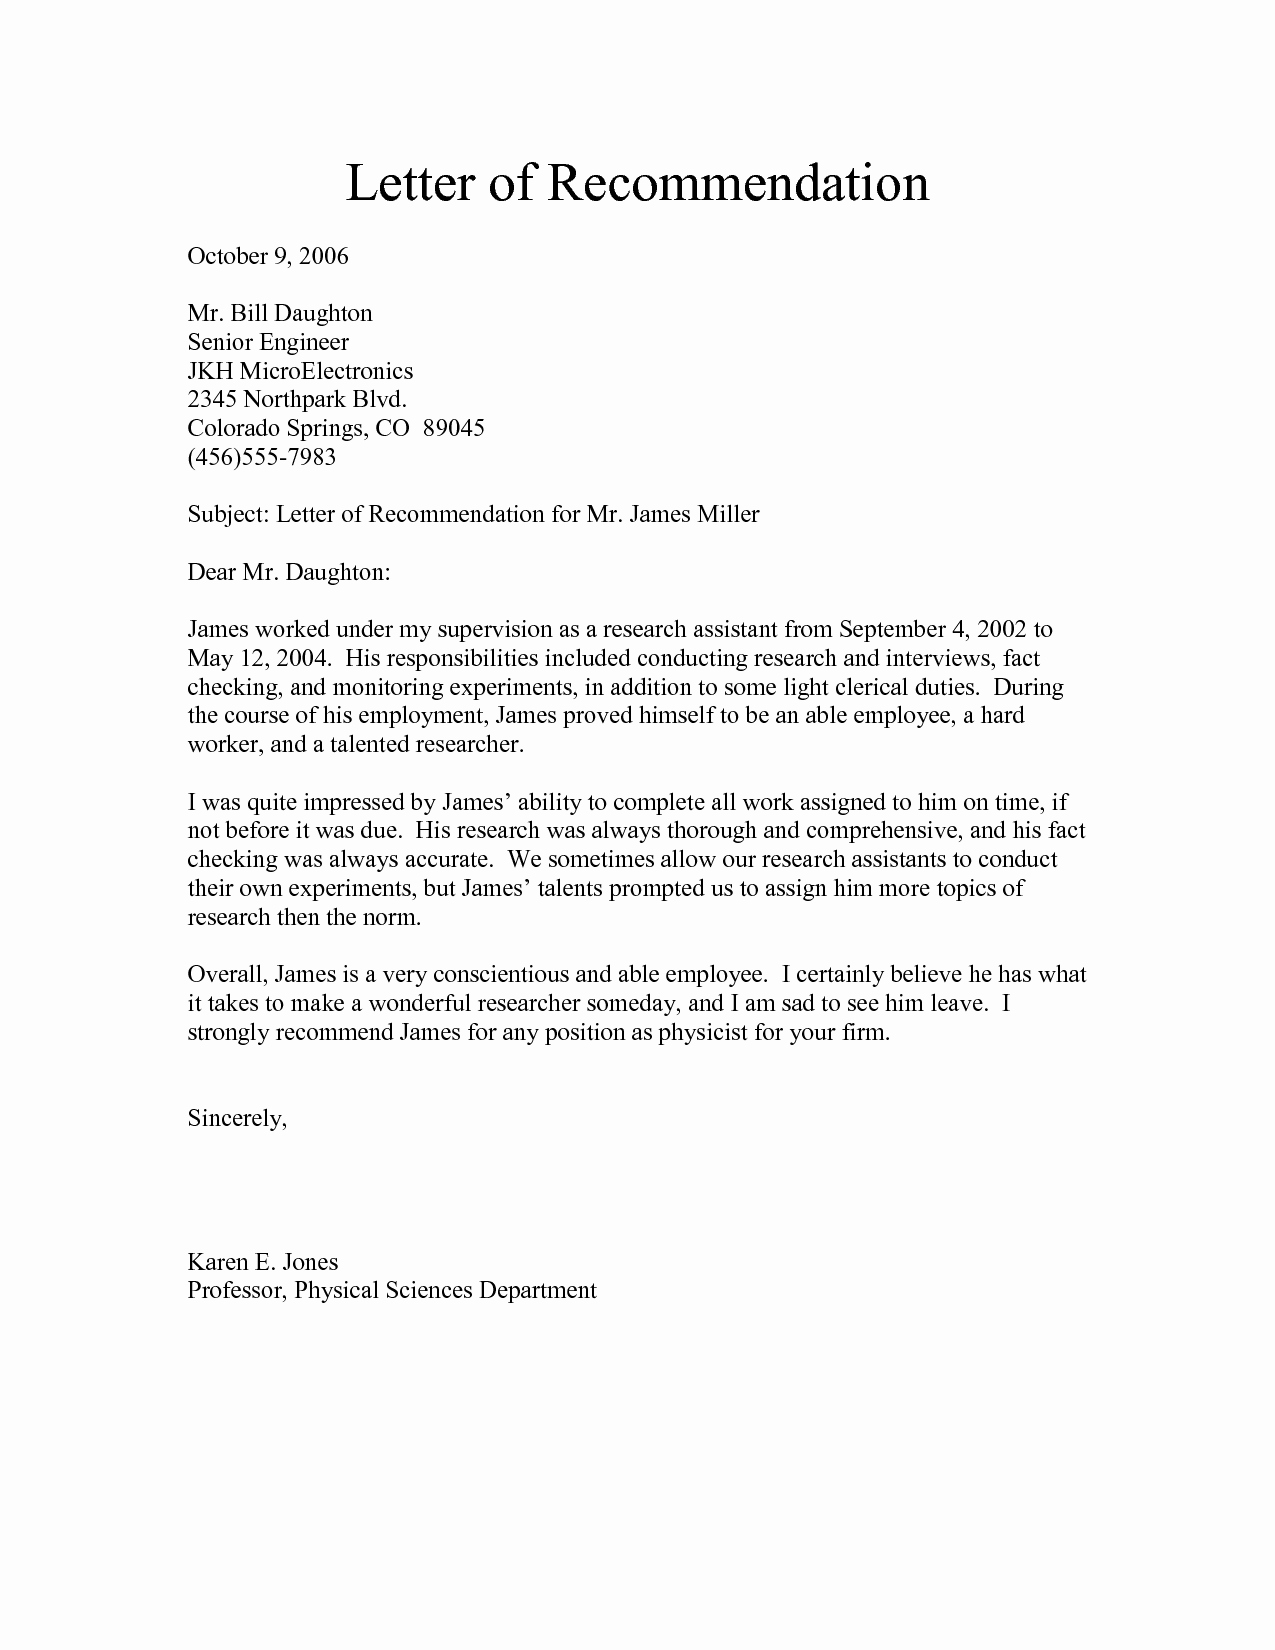 Letter Of Recommendation with Letterhead Inspirational Free Re Mendation Letter Download